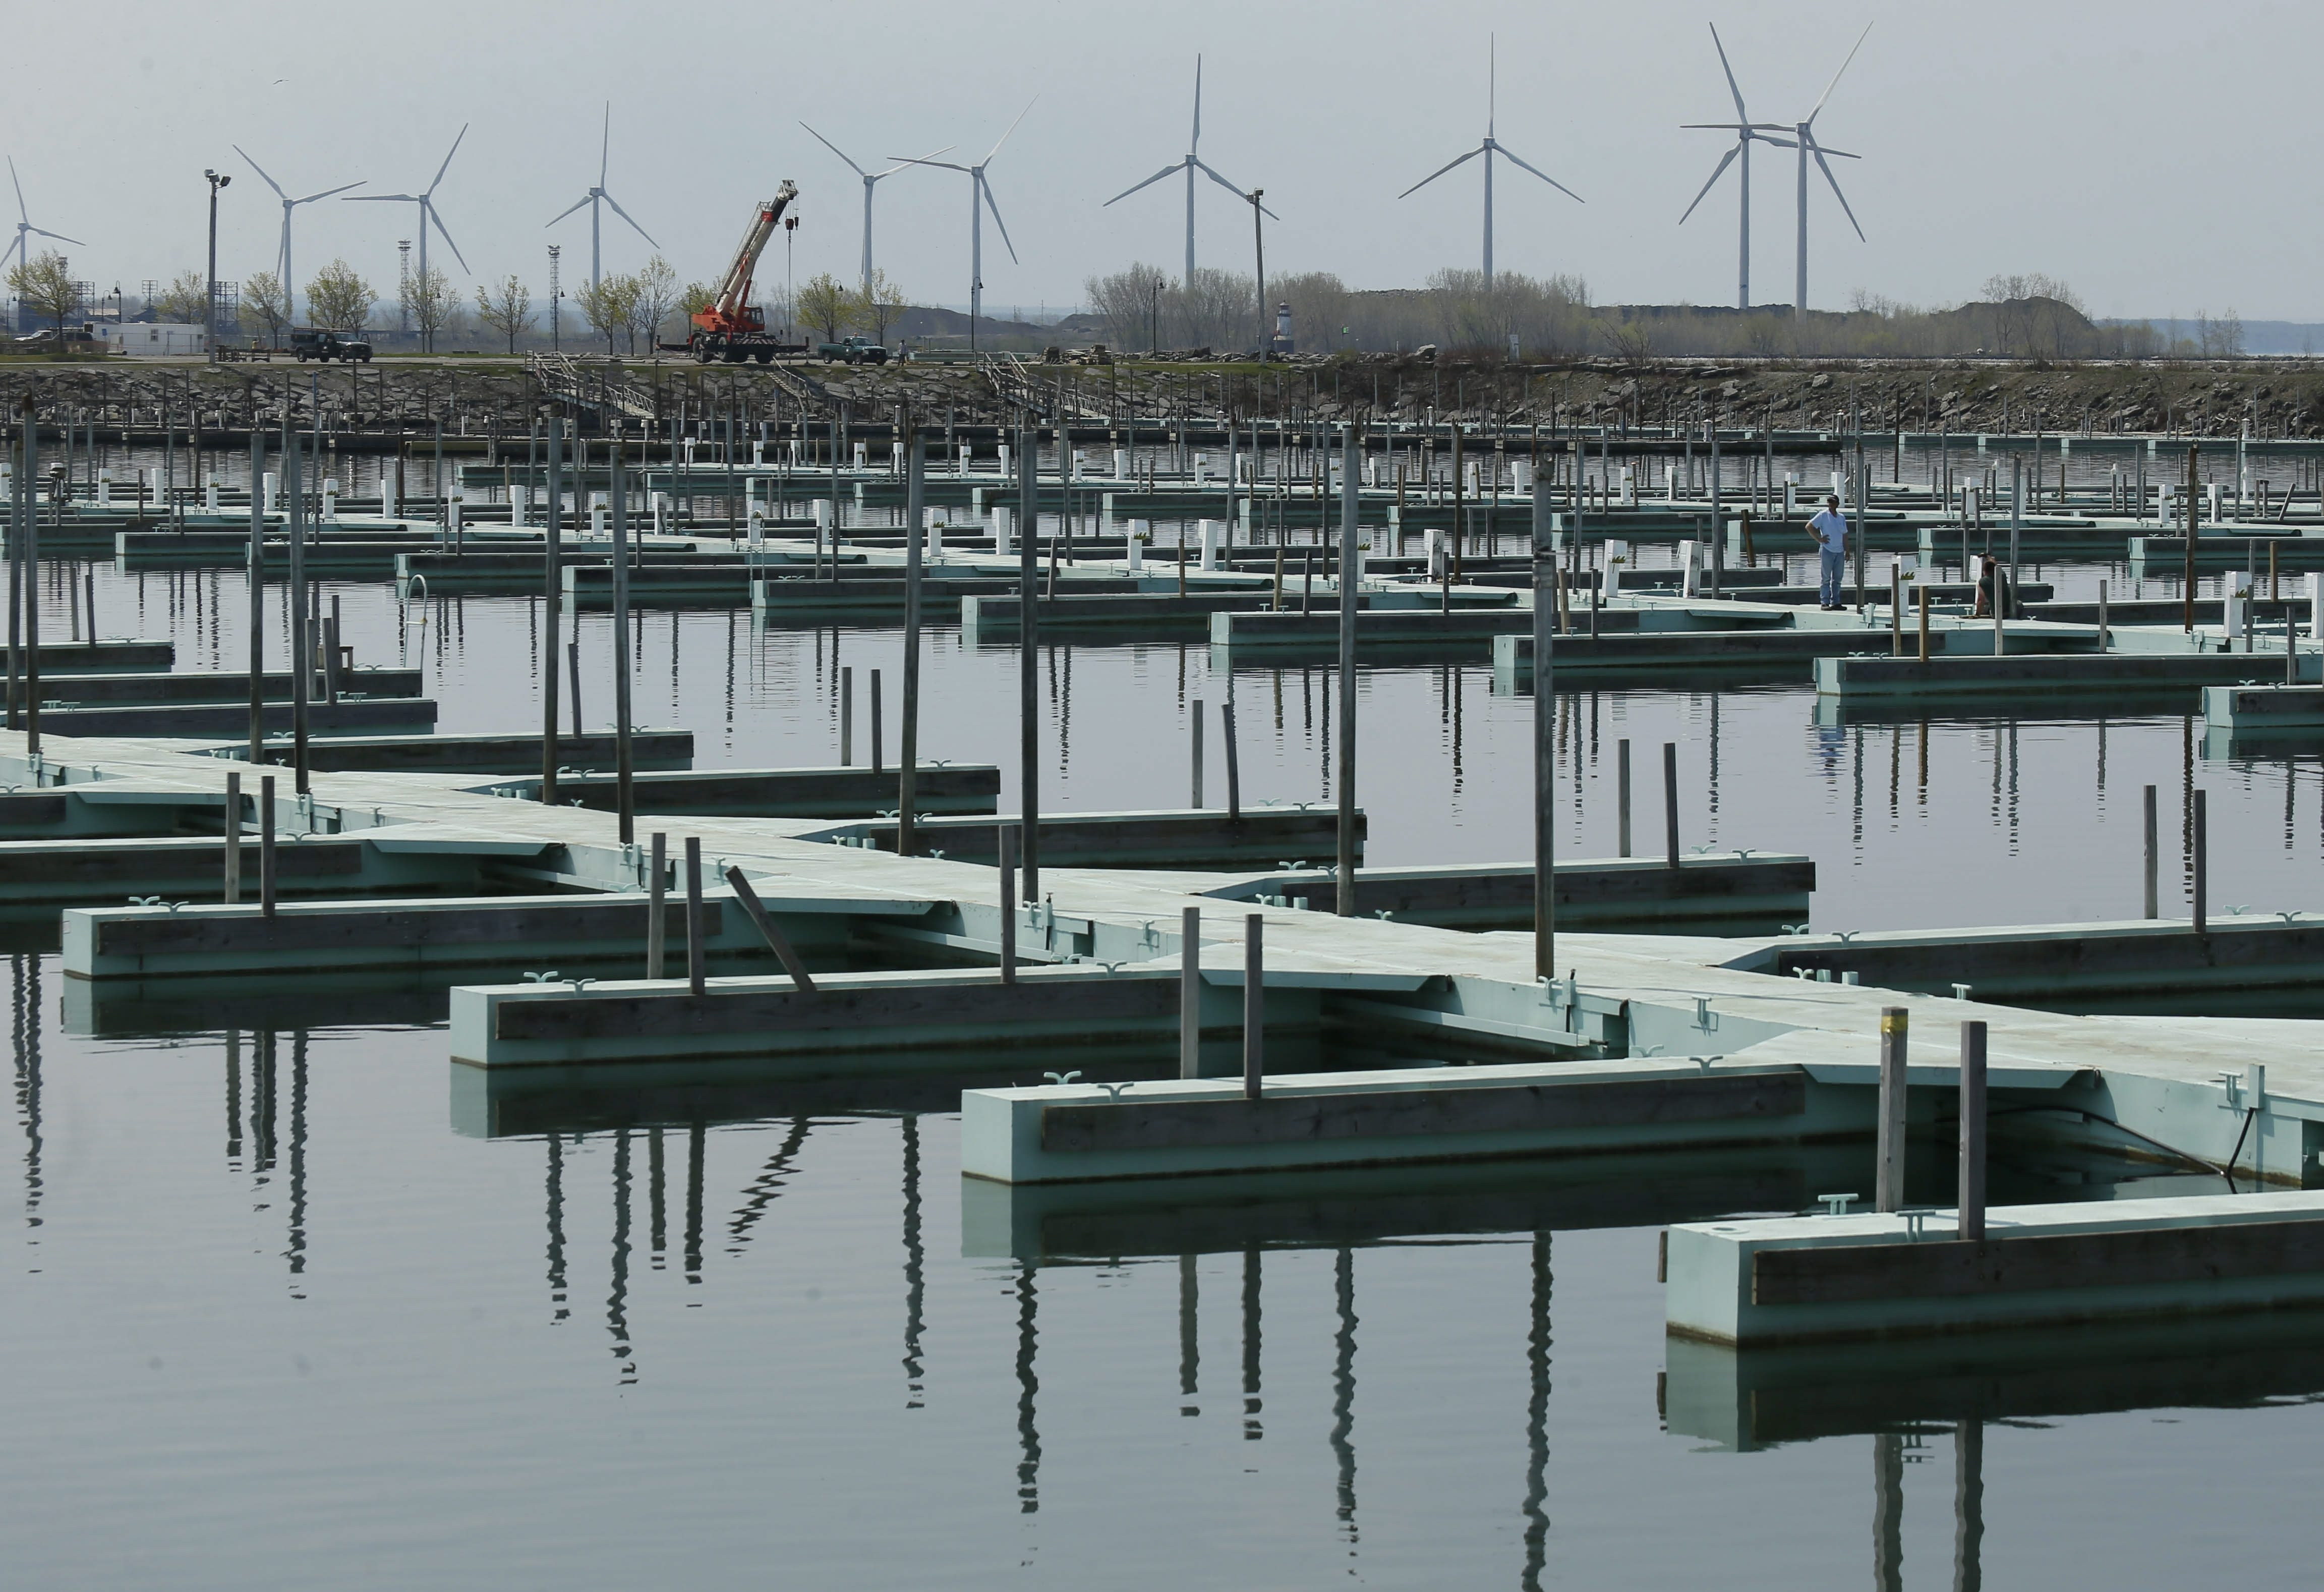 Workers install the docks at the Small Boat Harbor on May 8. (Derek Gee/Buffalo News)